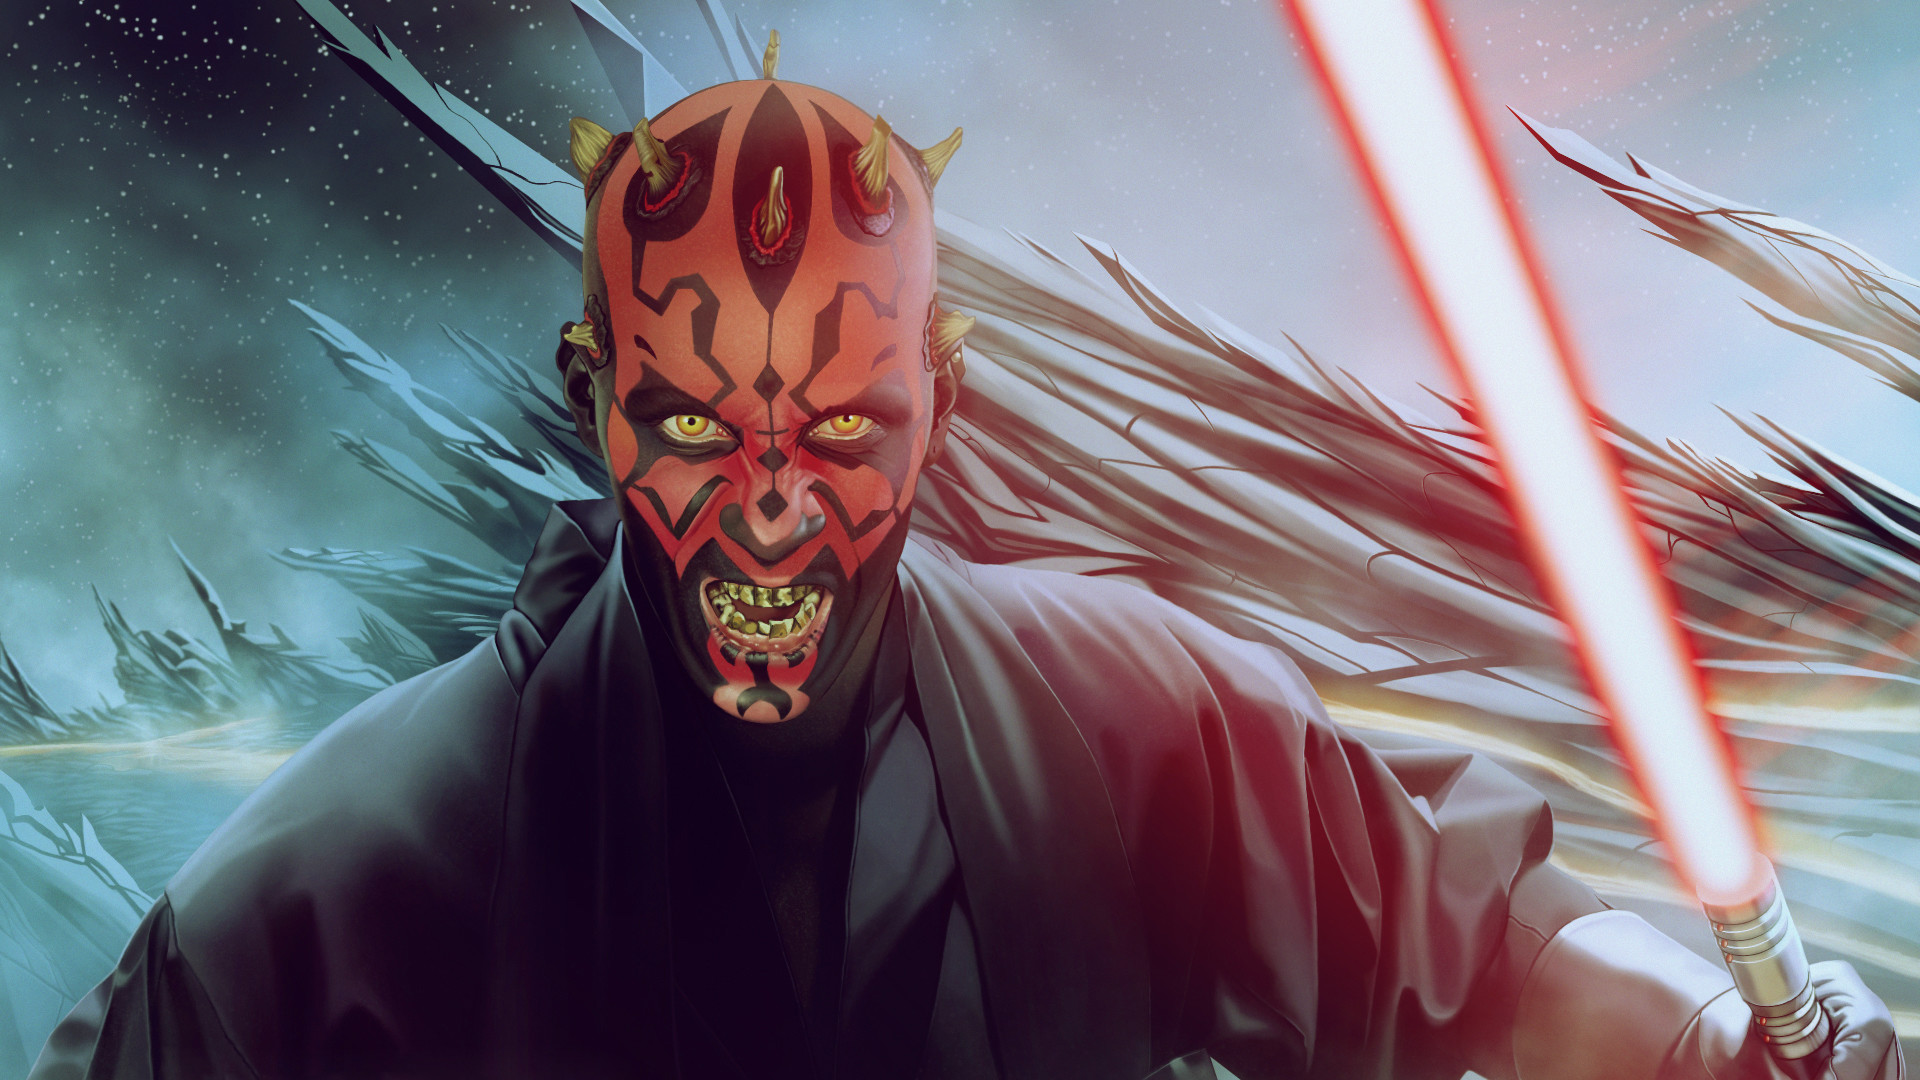 HD Darth Maul Wallpaper (71+ images)